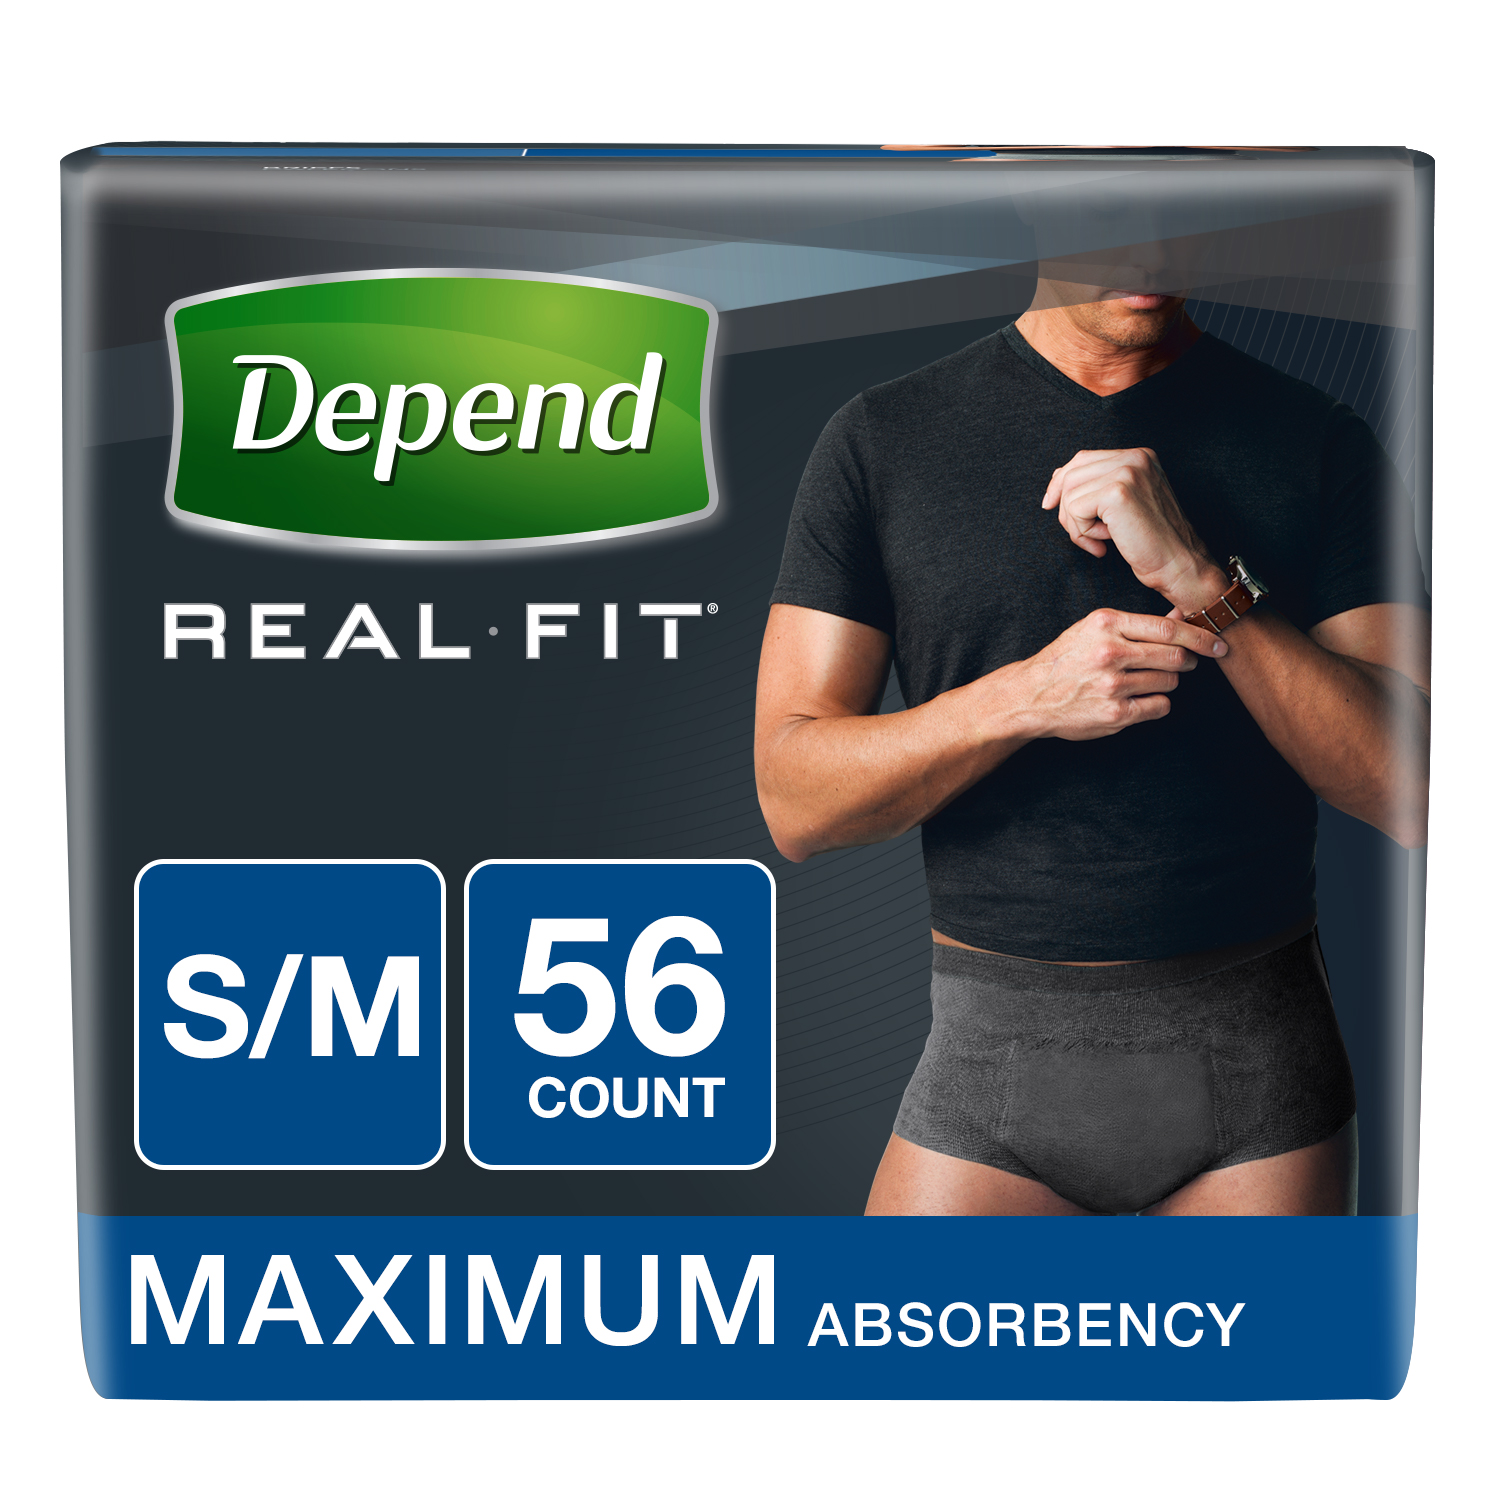 Depend Real Fit Incontinence Briefs for Men, Maximum Absorbency, S/M, Black, 56 count